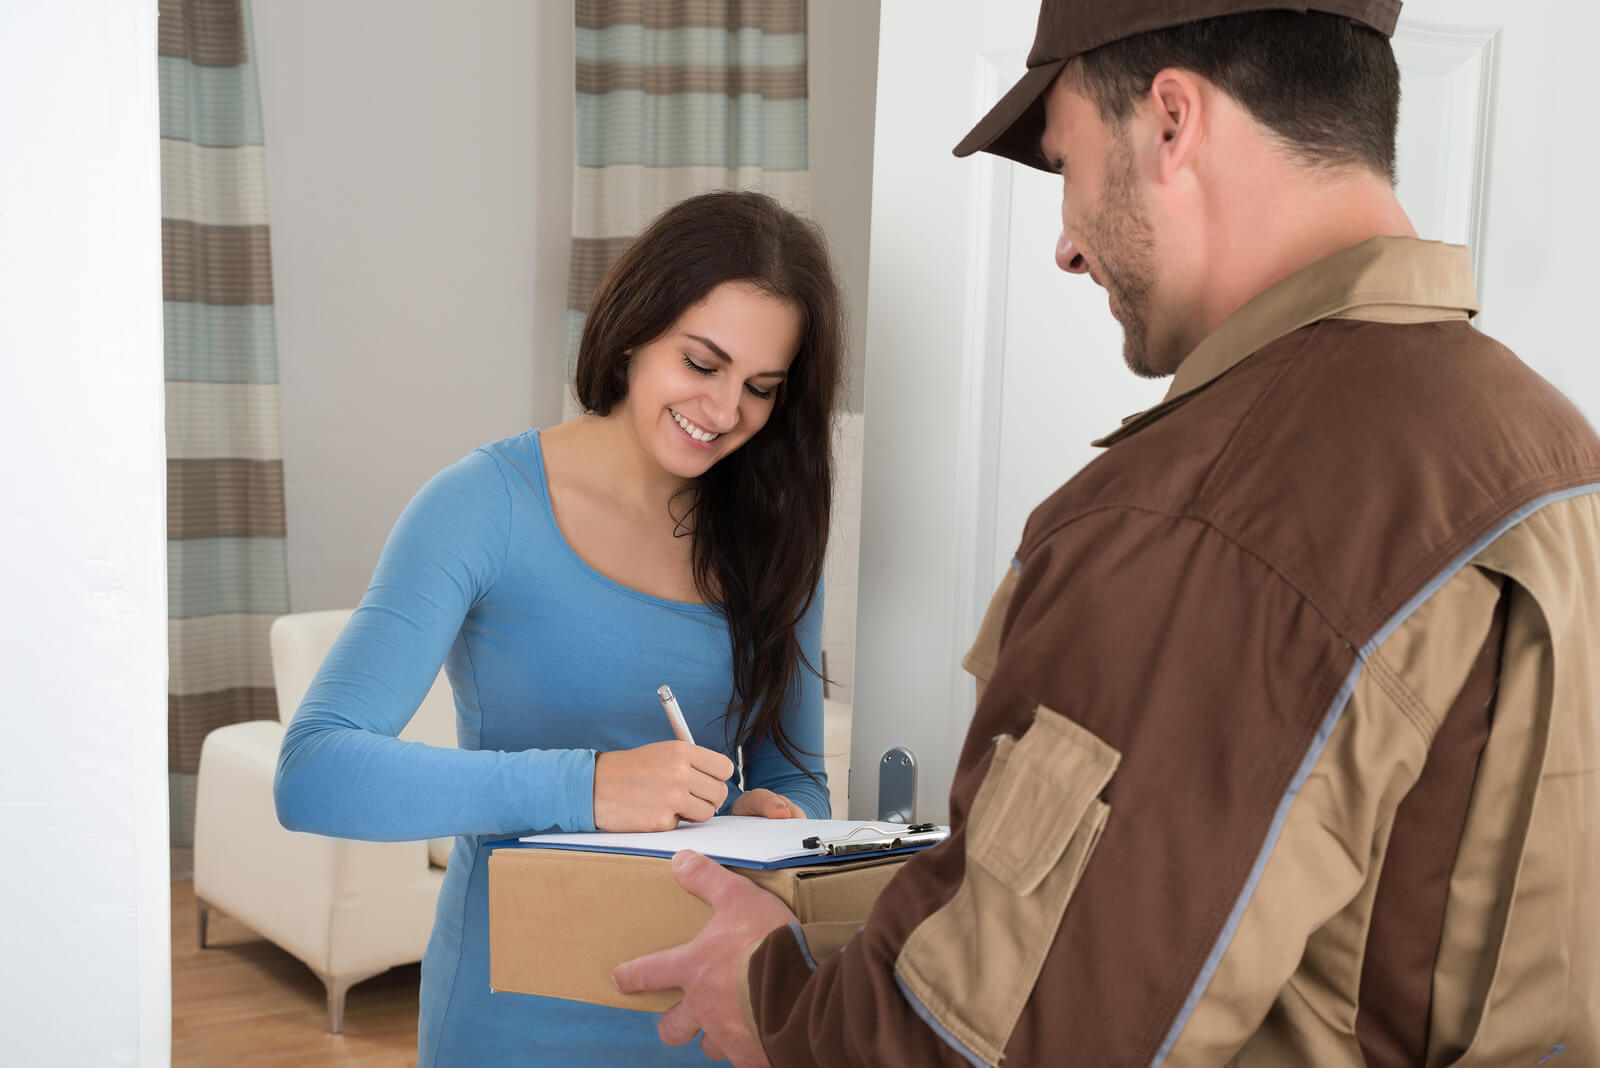 Young Woman Signing While Receiving Courier From Delivery Man